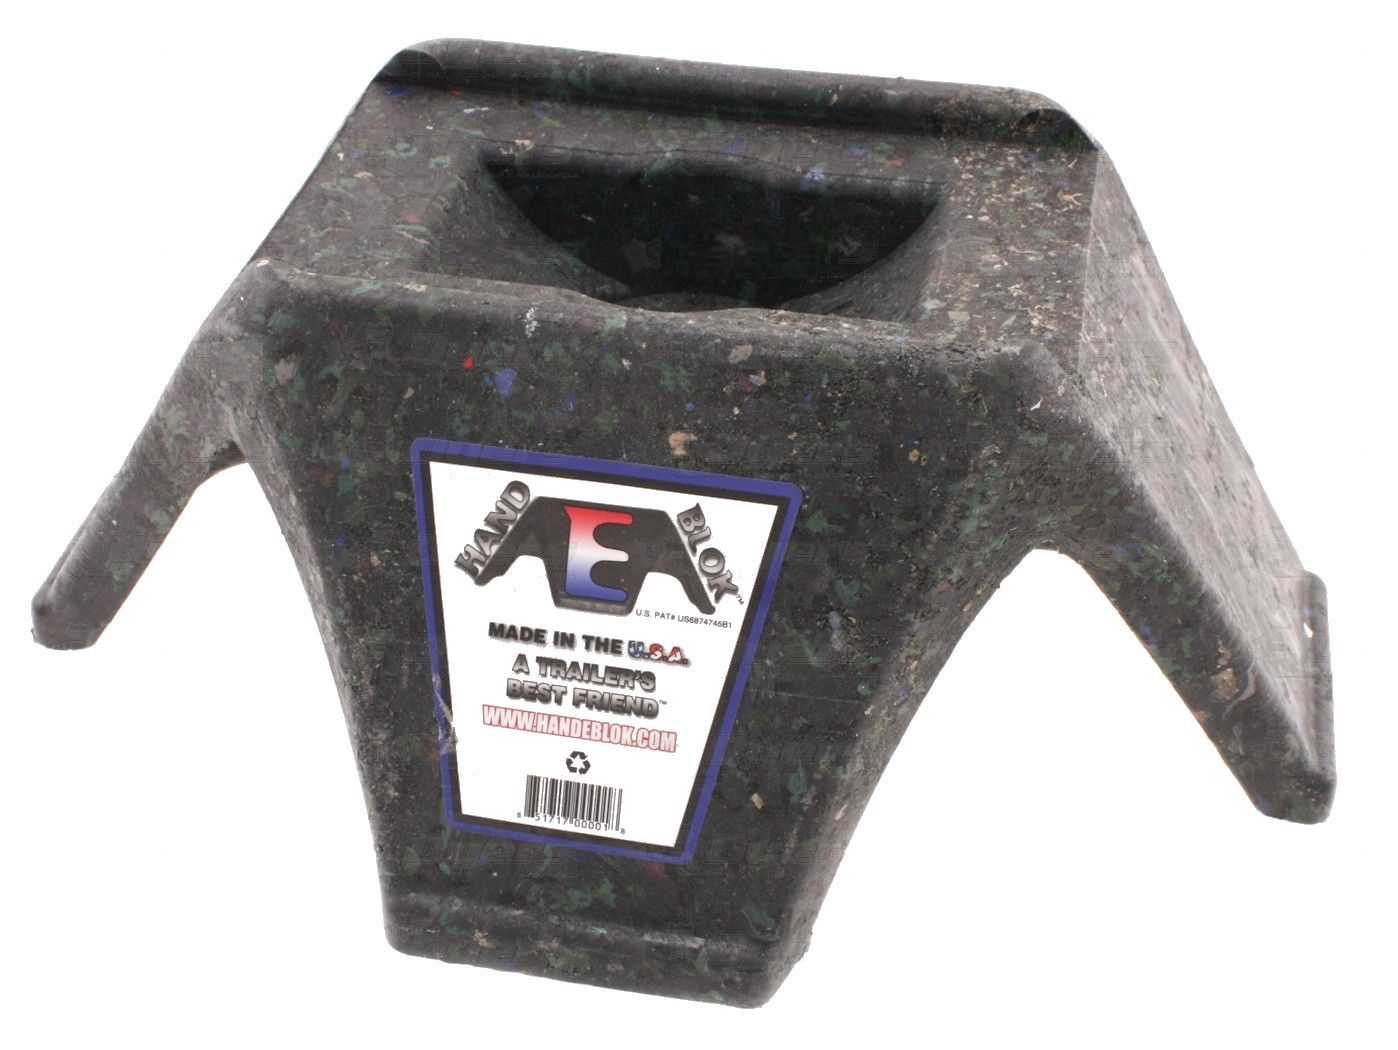 HB-200401 Hand-E-Blok Trailer Stabilizer Jack Stand Use To Stabilize